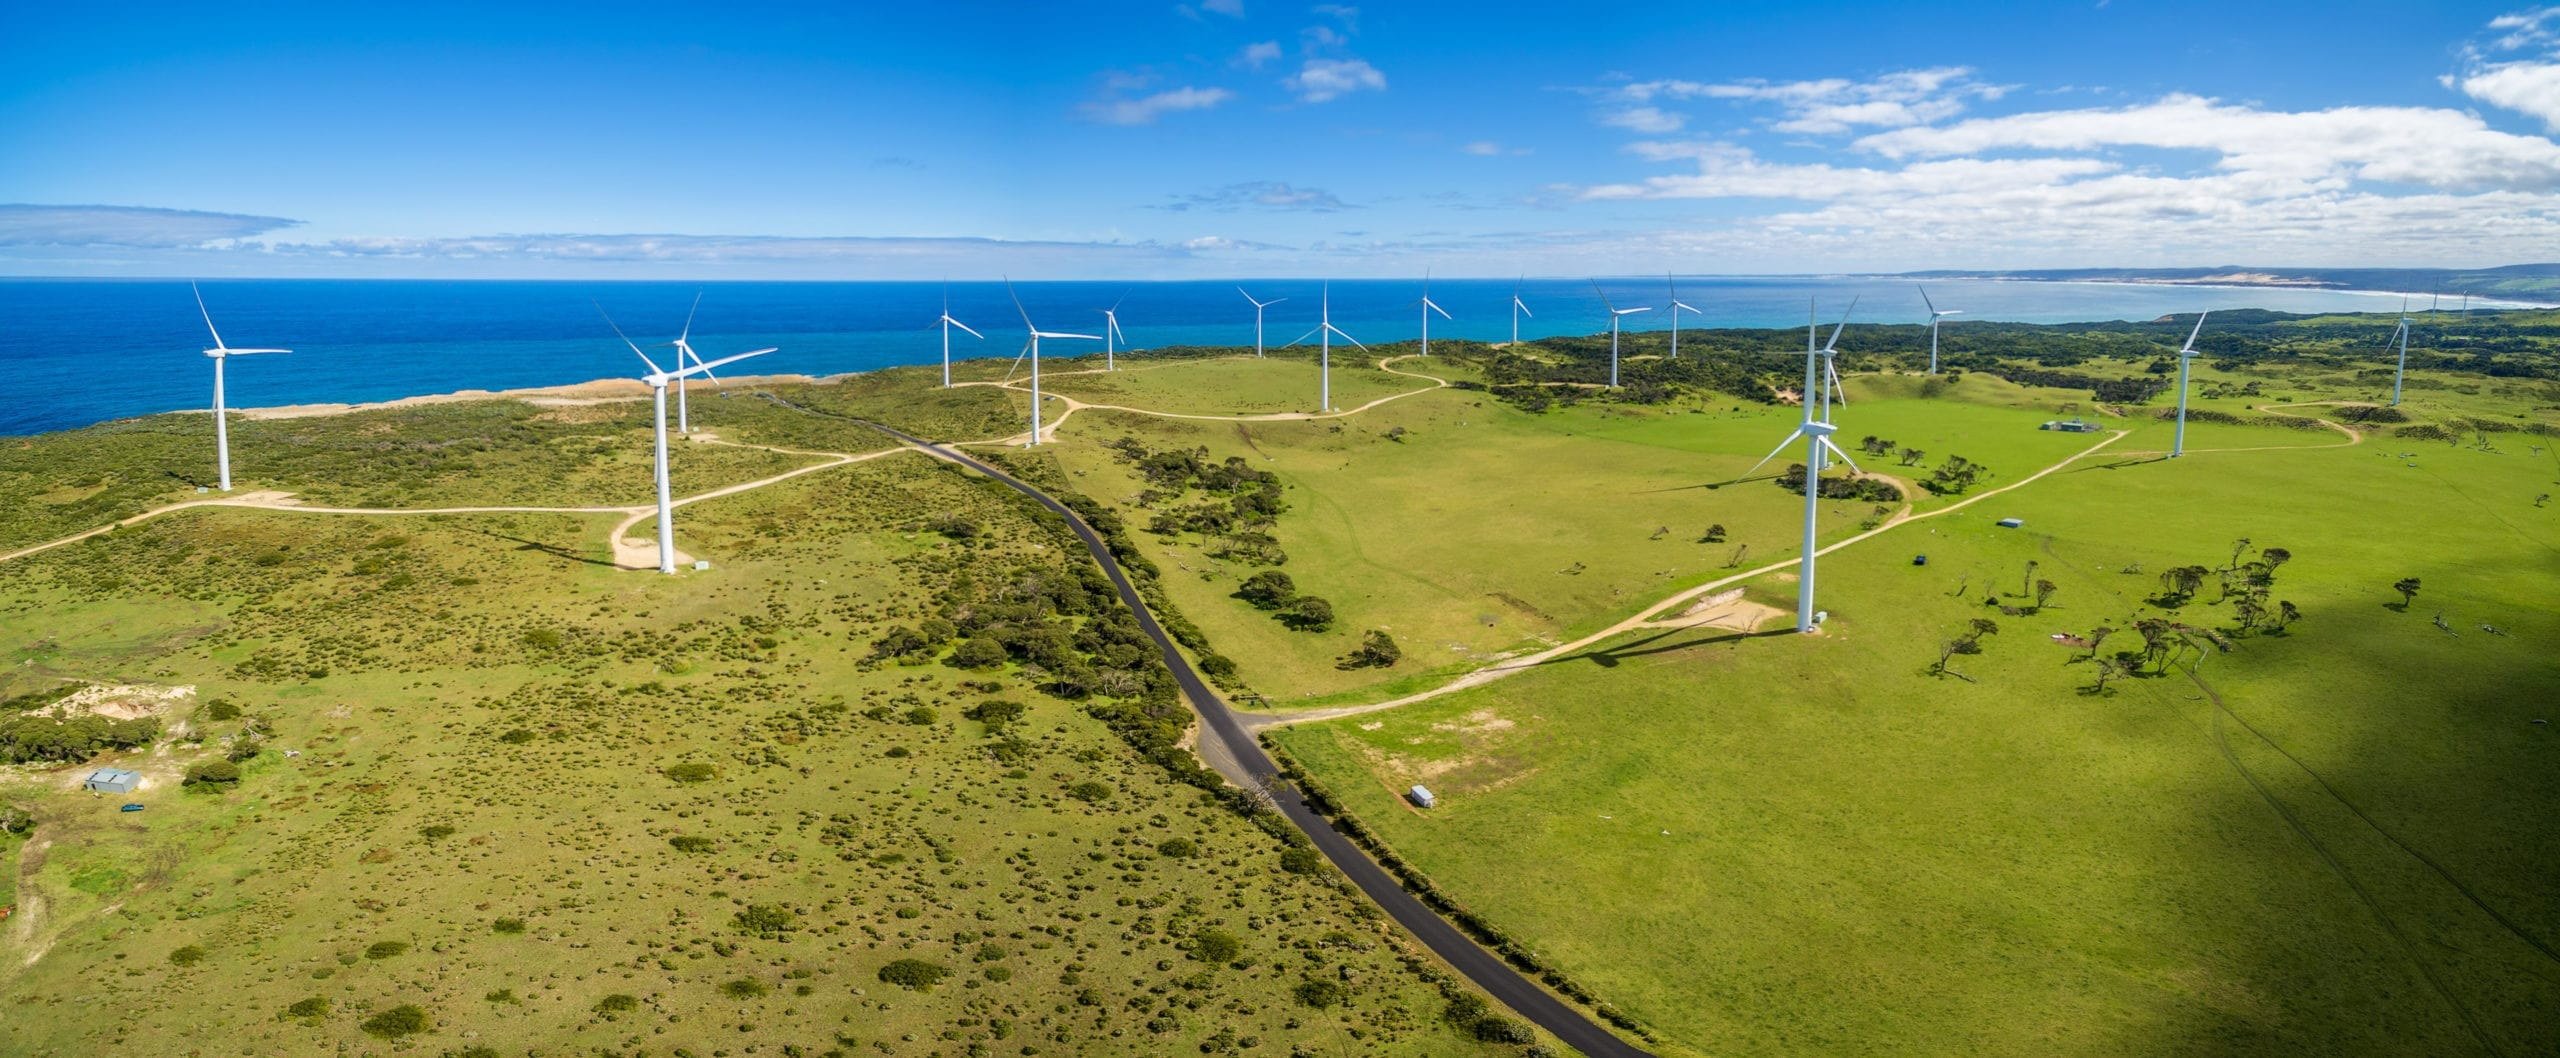 Wind and solar farm, Australia